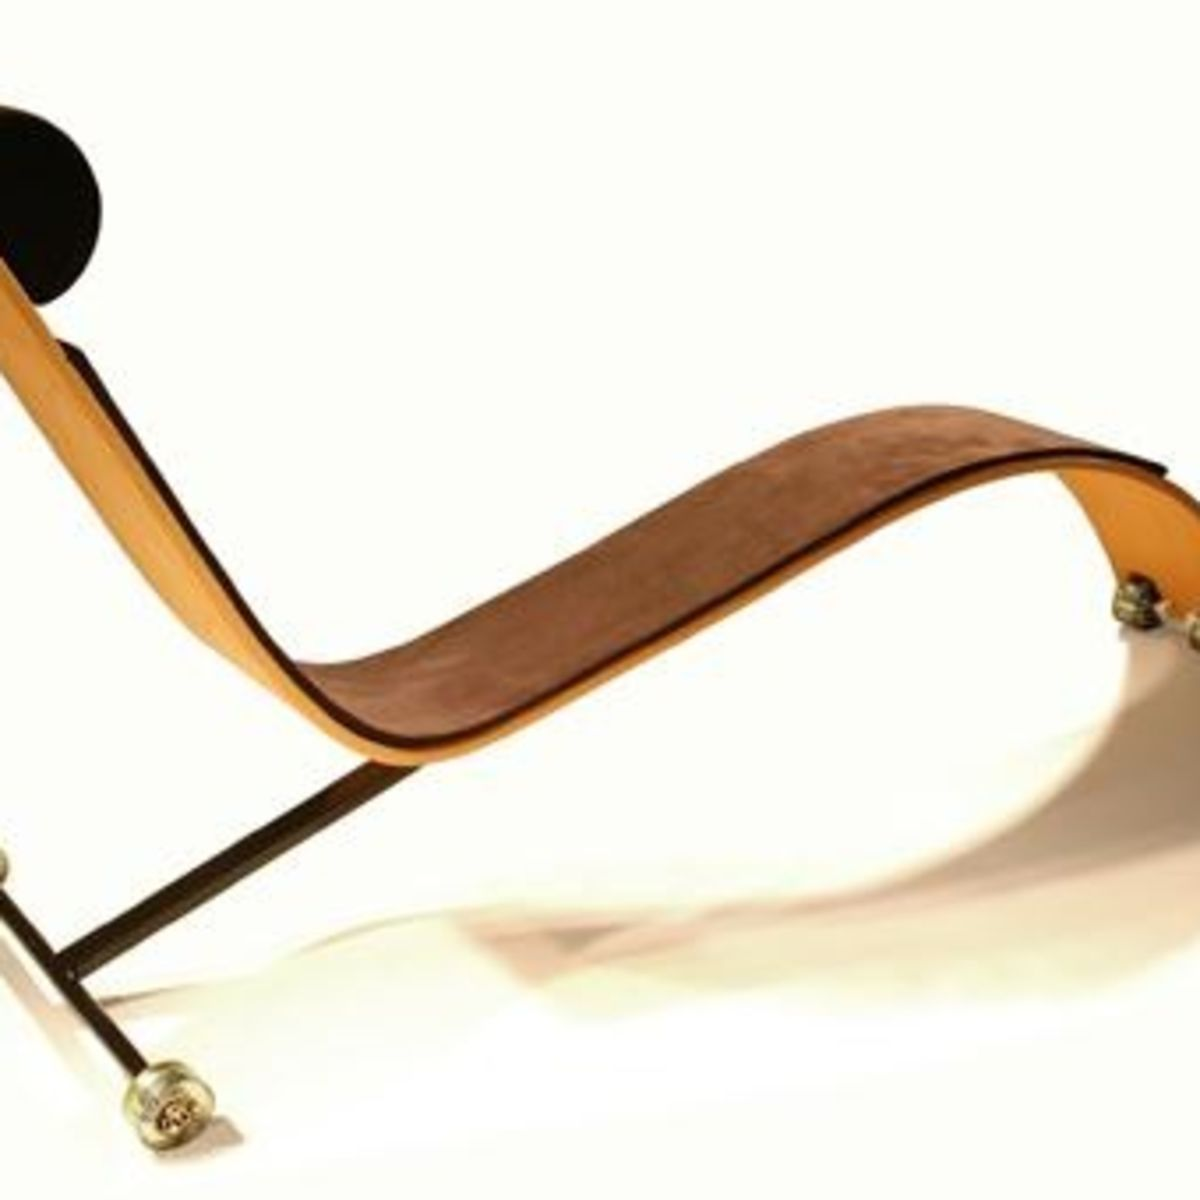 Alet Chair With Skateboard Wheels By Igland Design